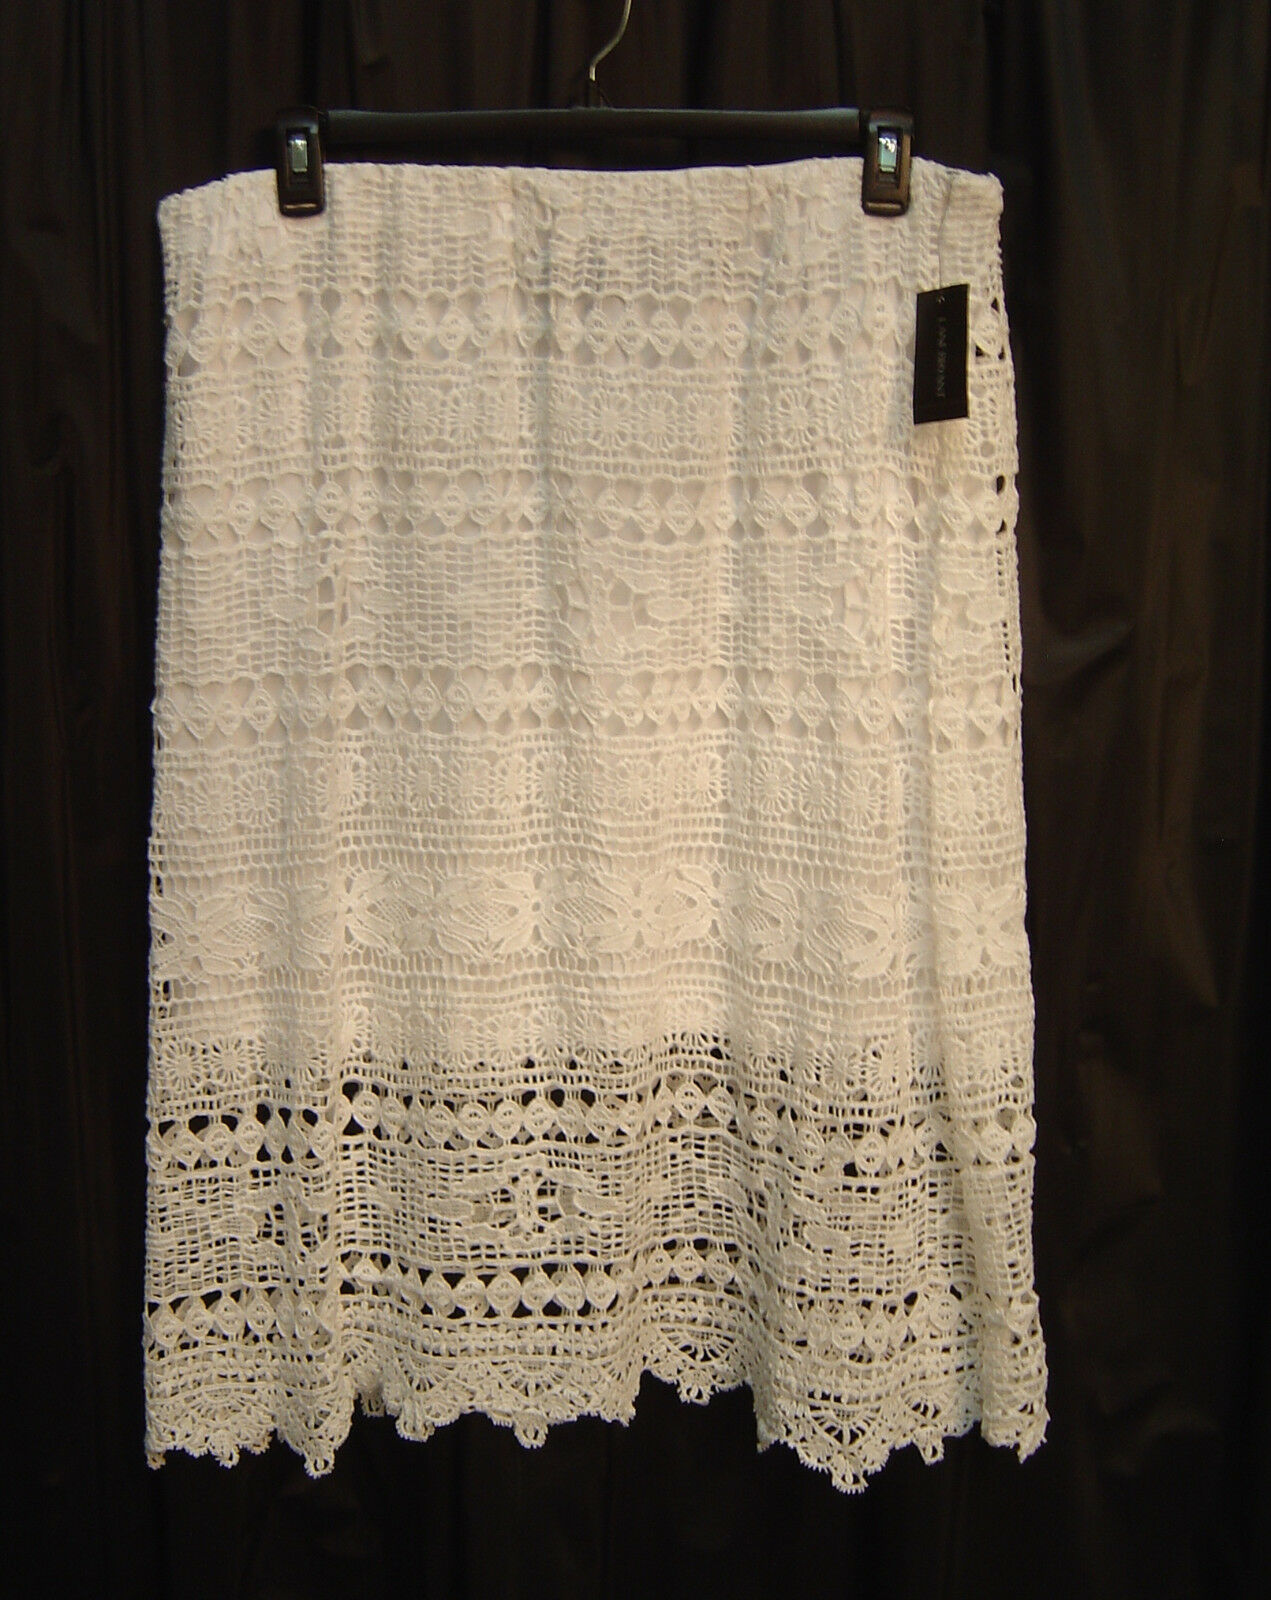 BRIGHT WHITE OPEN WEAVE CROCHETED LACE LINED PULL-UP MIDI DRESS SKIRT24NEW